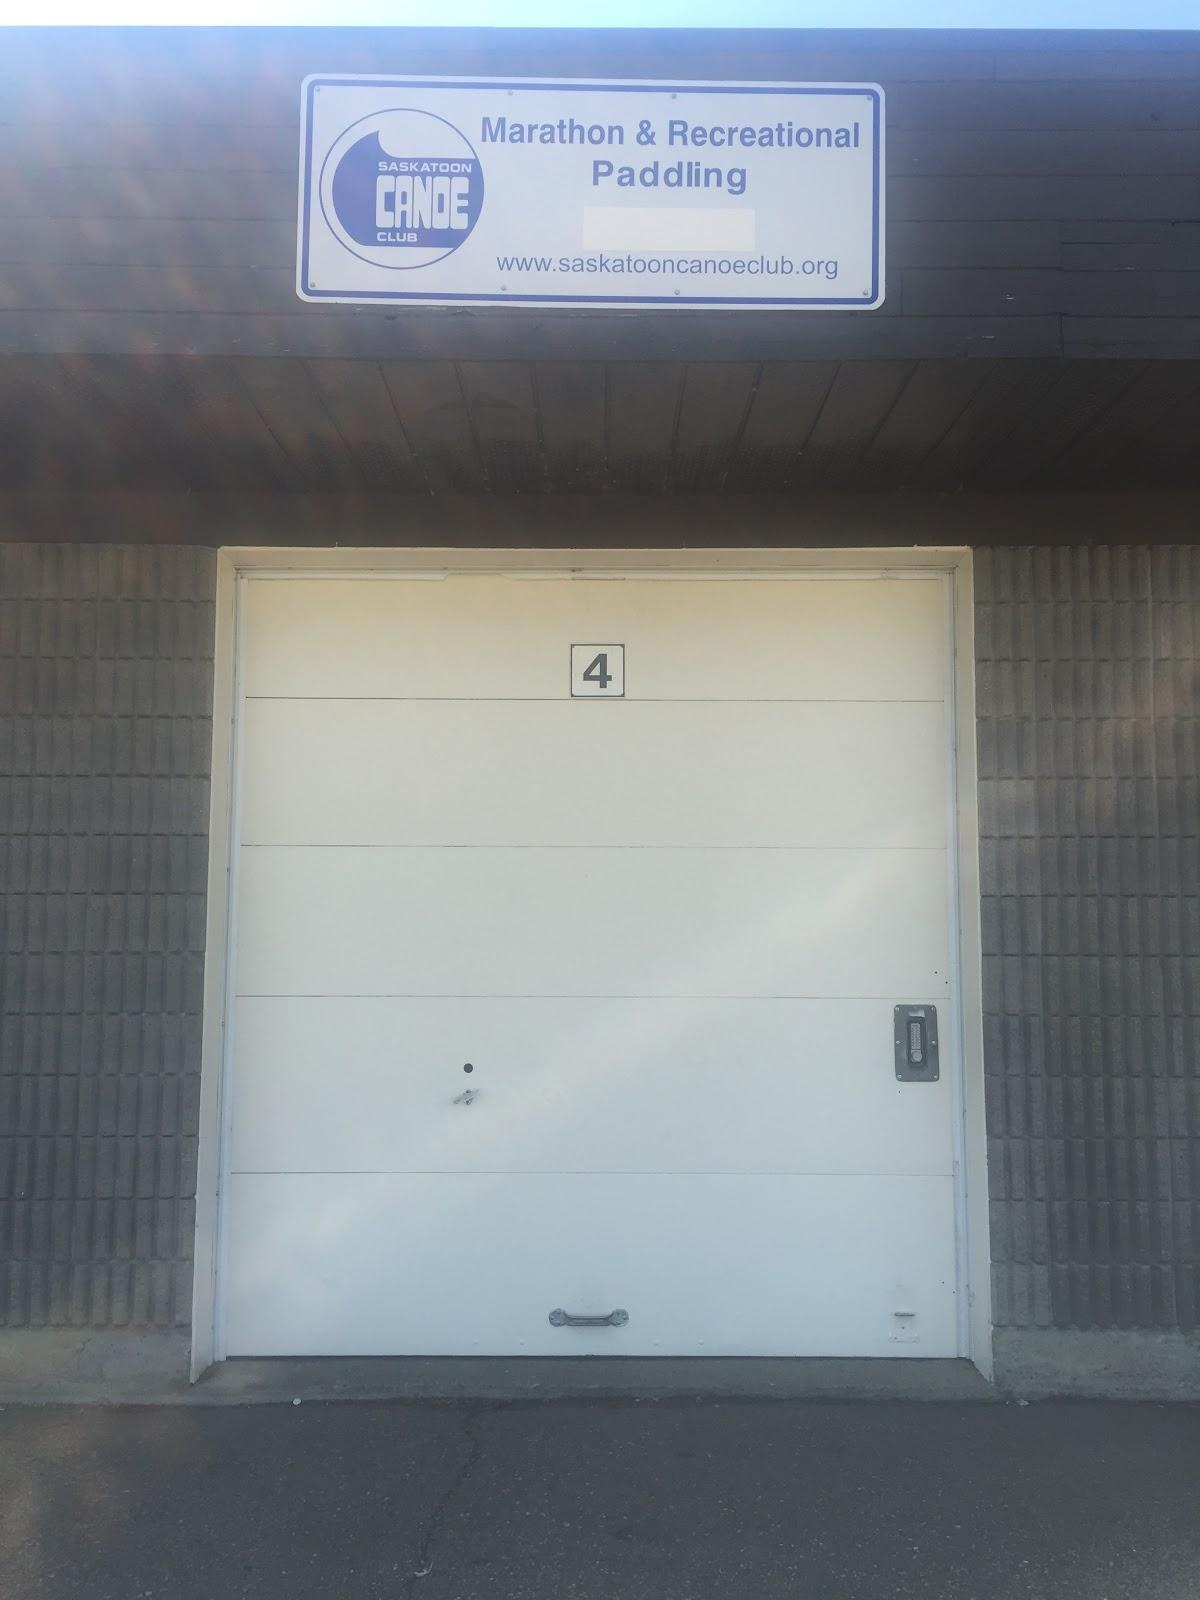 Photo of the door at bay 4 closed